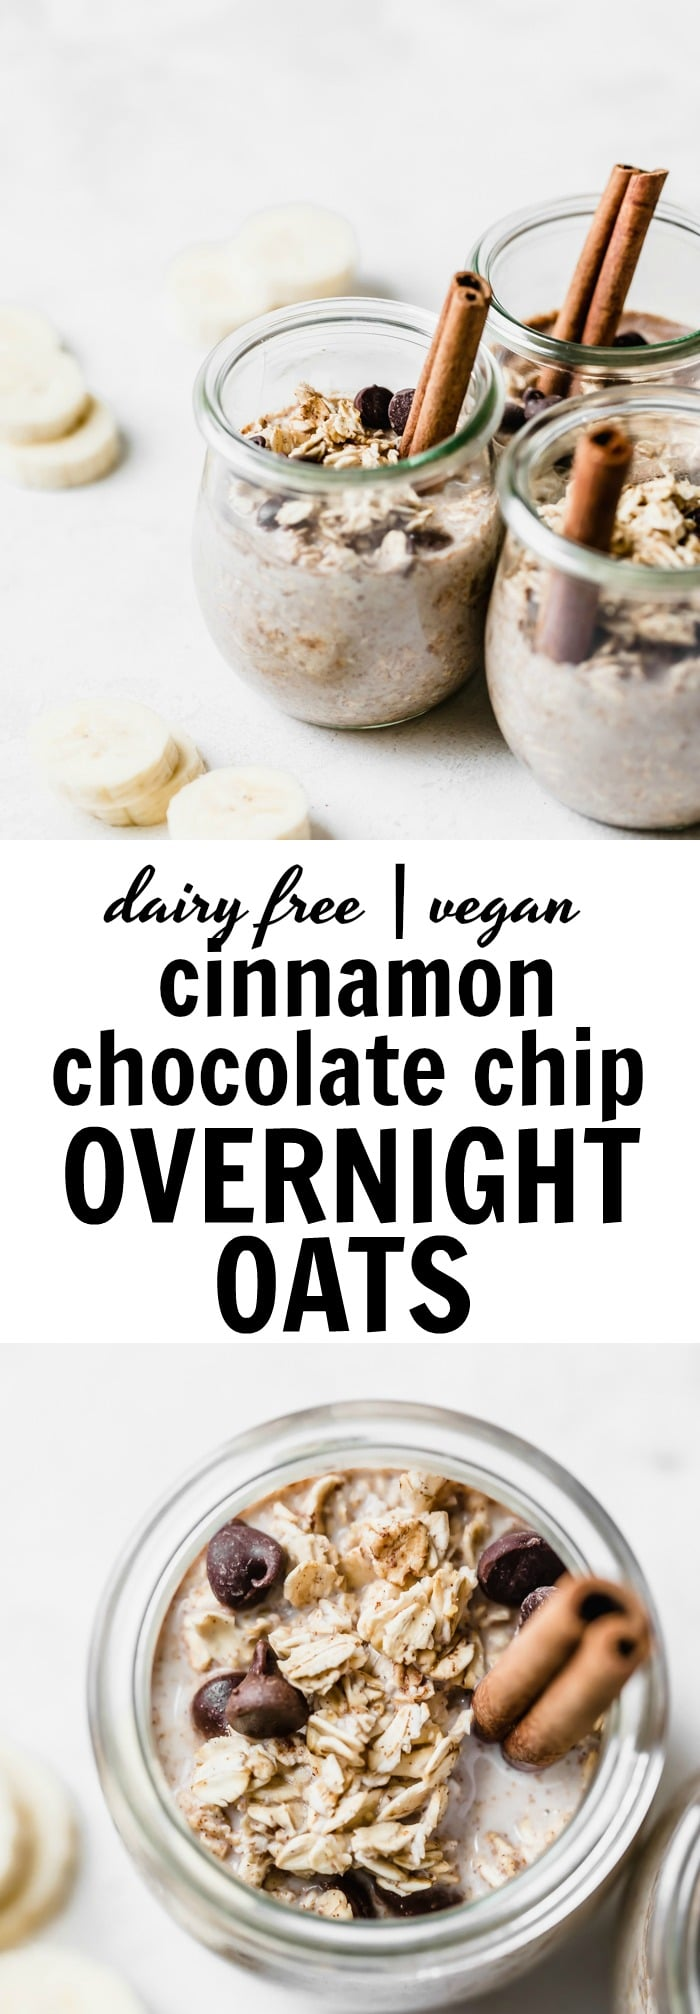 Chocolate Chip Overnight Oats made with cinnamon for a quick, tasty and healthy #breakfast